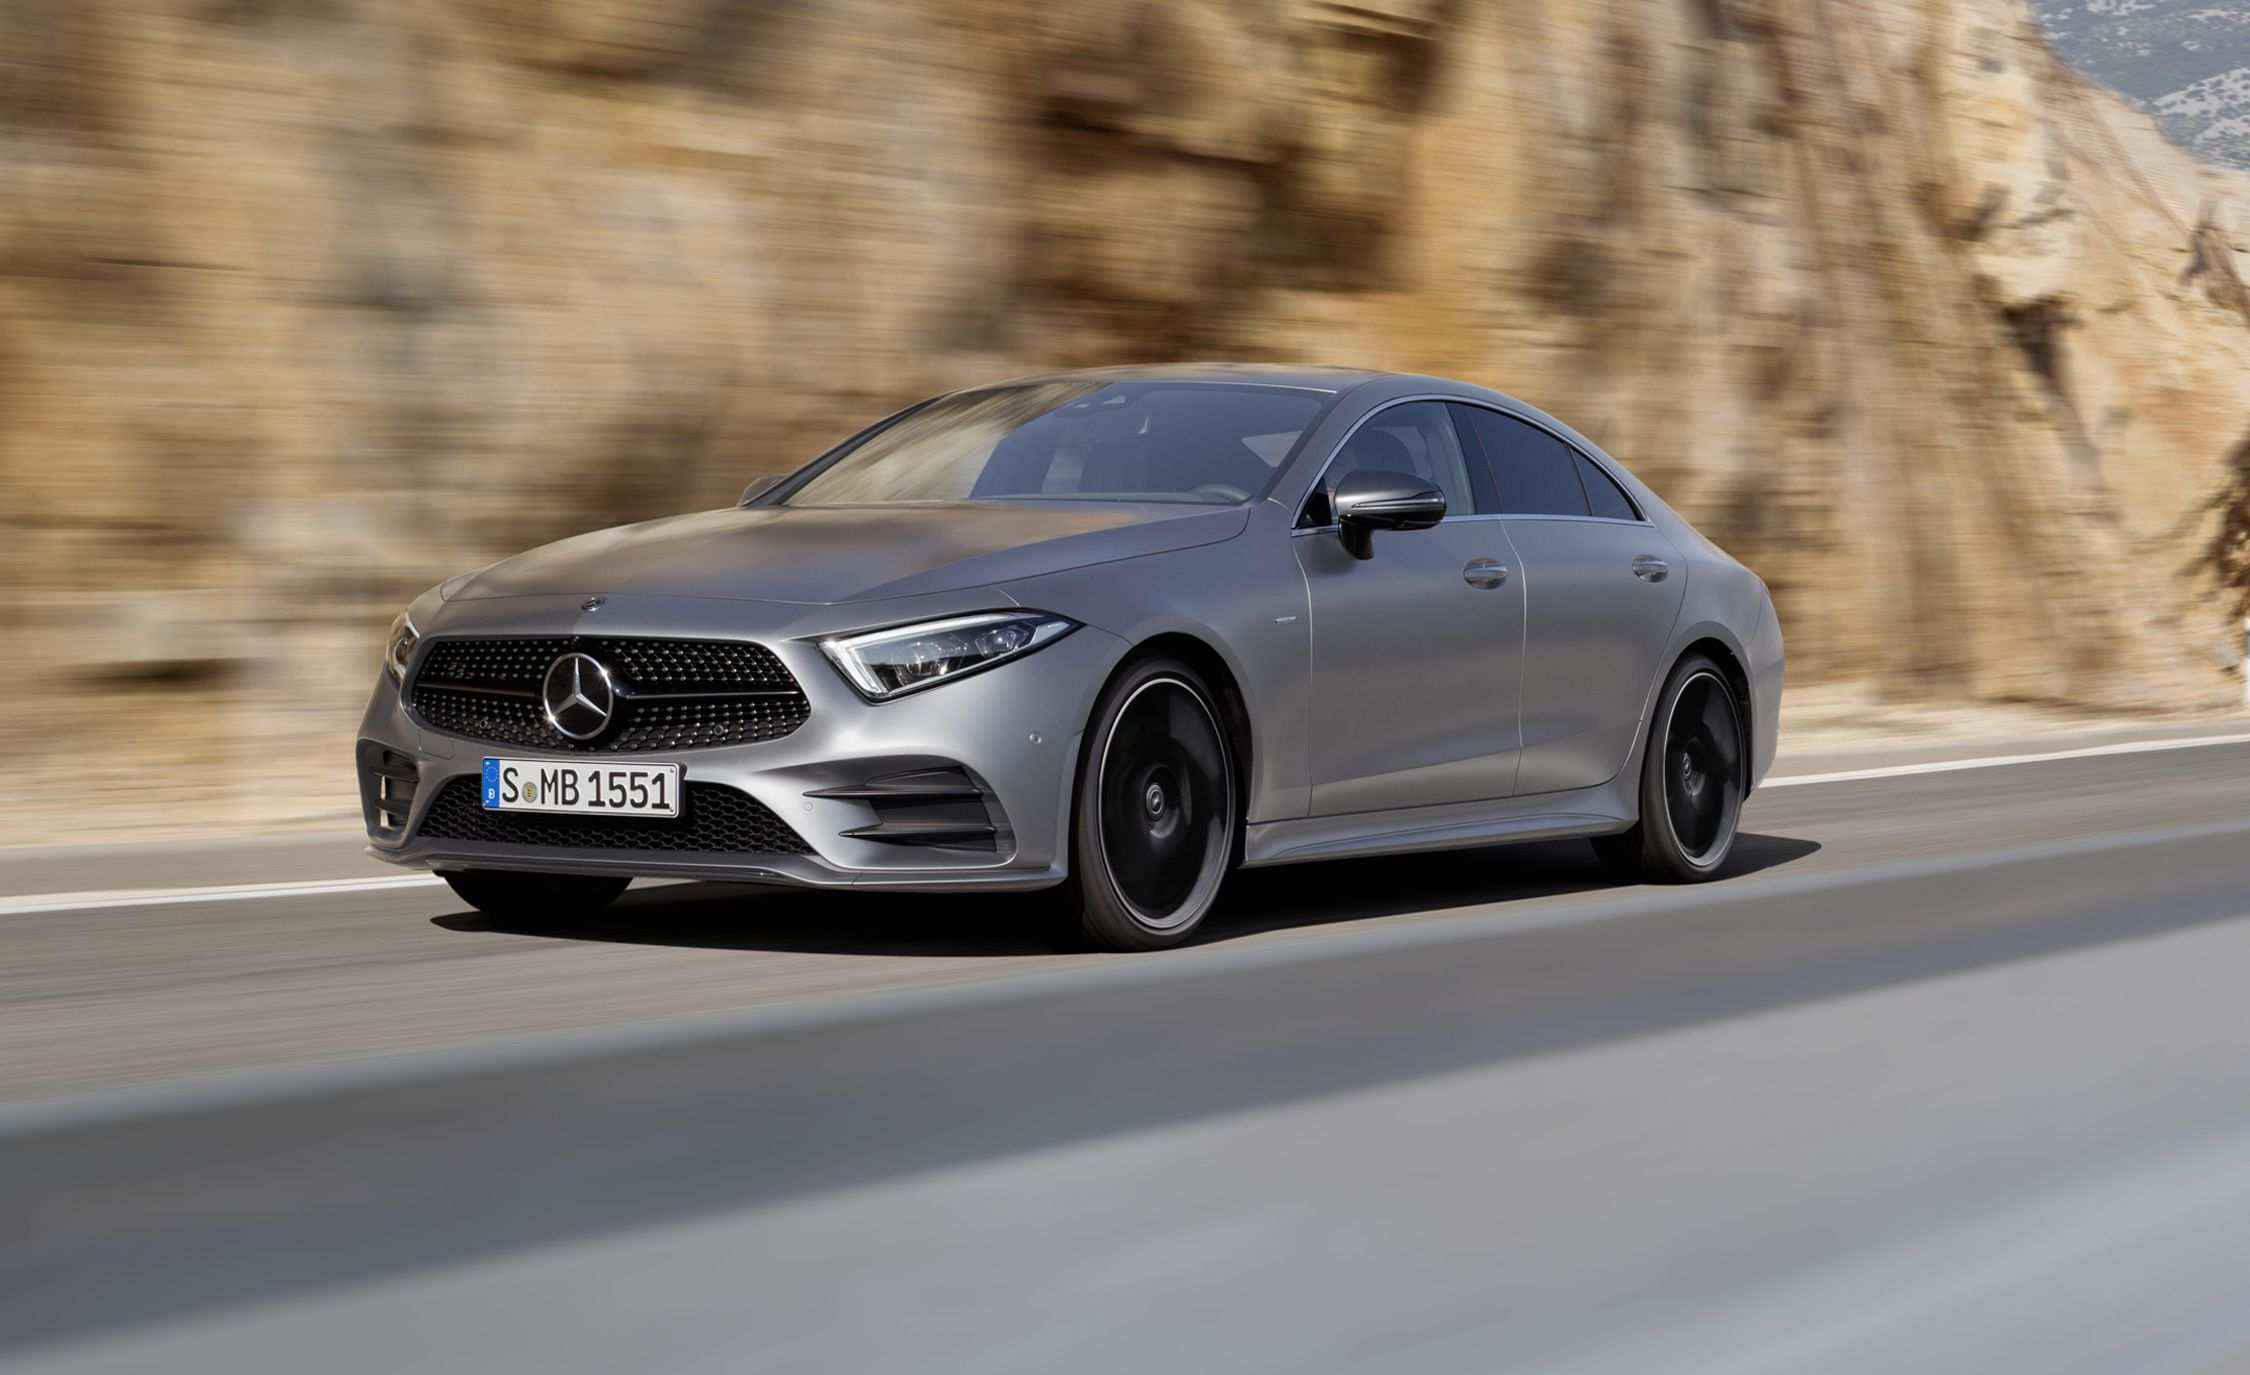 21 All New Pictures Of 2019 Mercedes Benz Concept